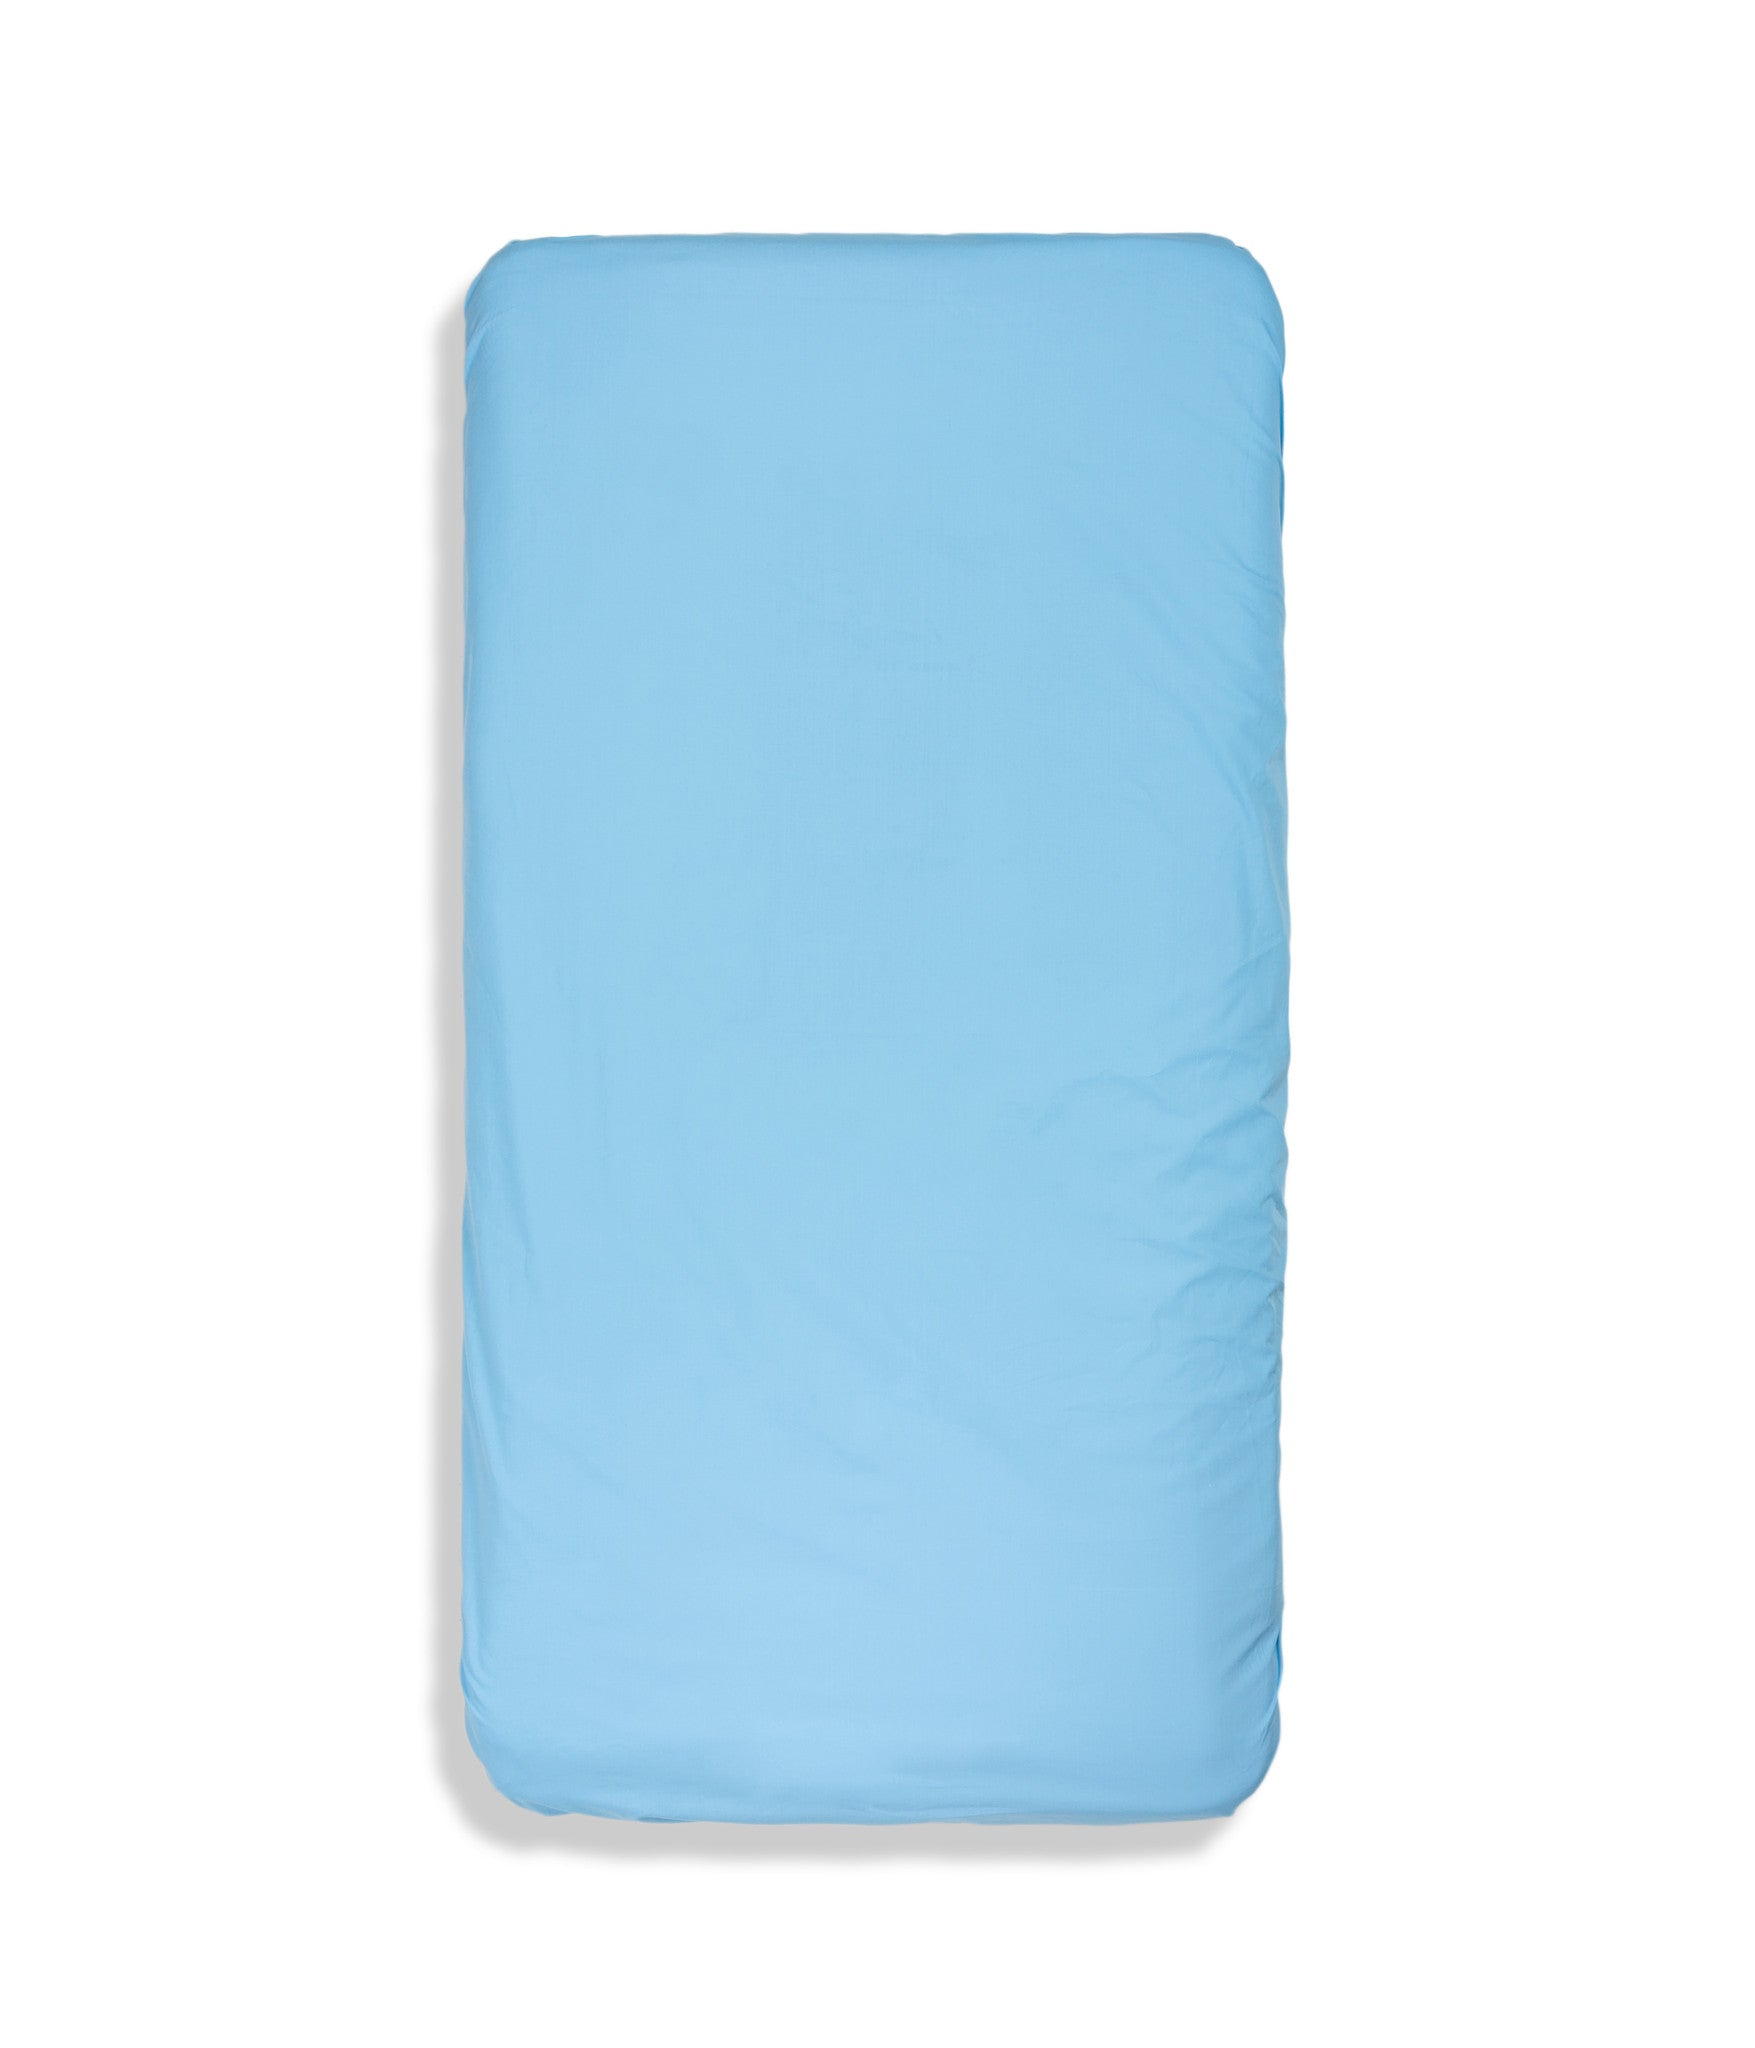 Organic cotton solid colour kids fitted sheet. Fully elasticized. Blue colour.